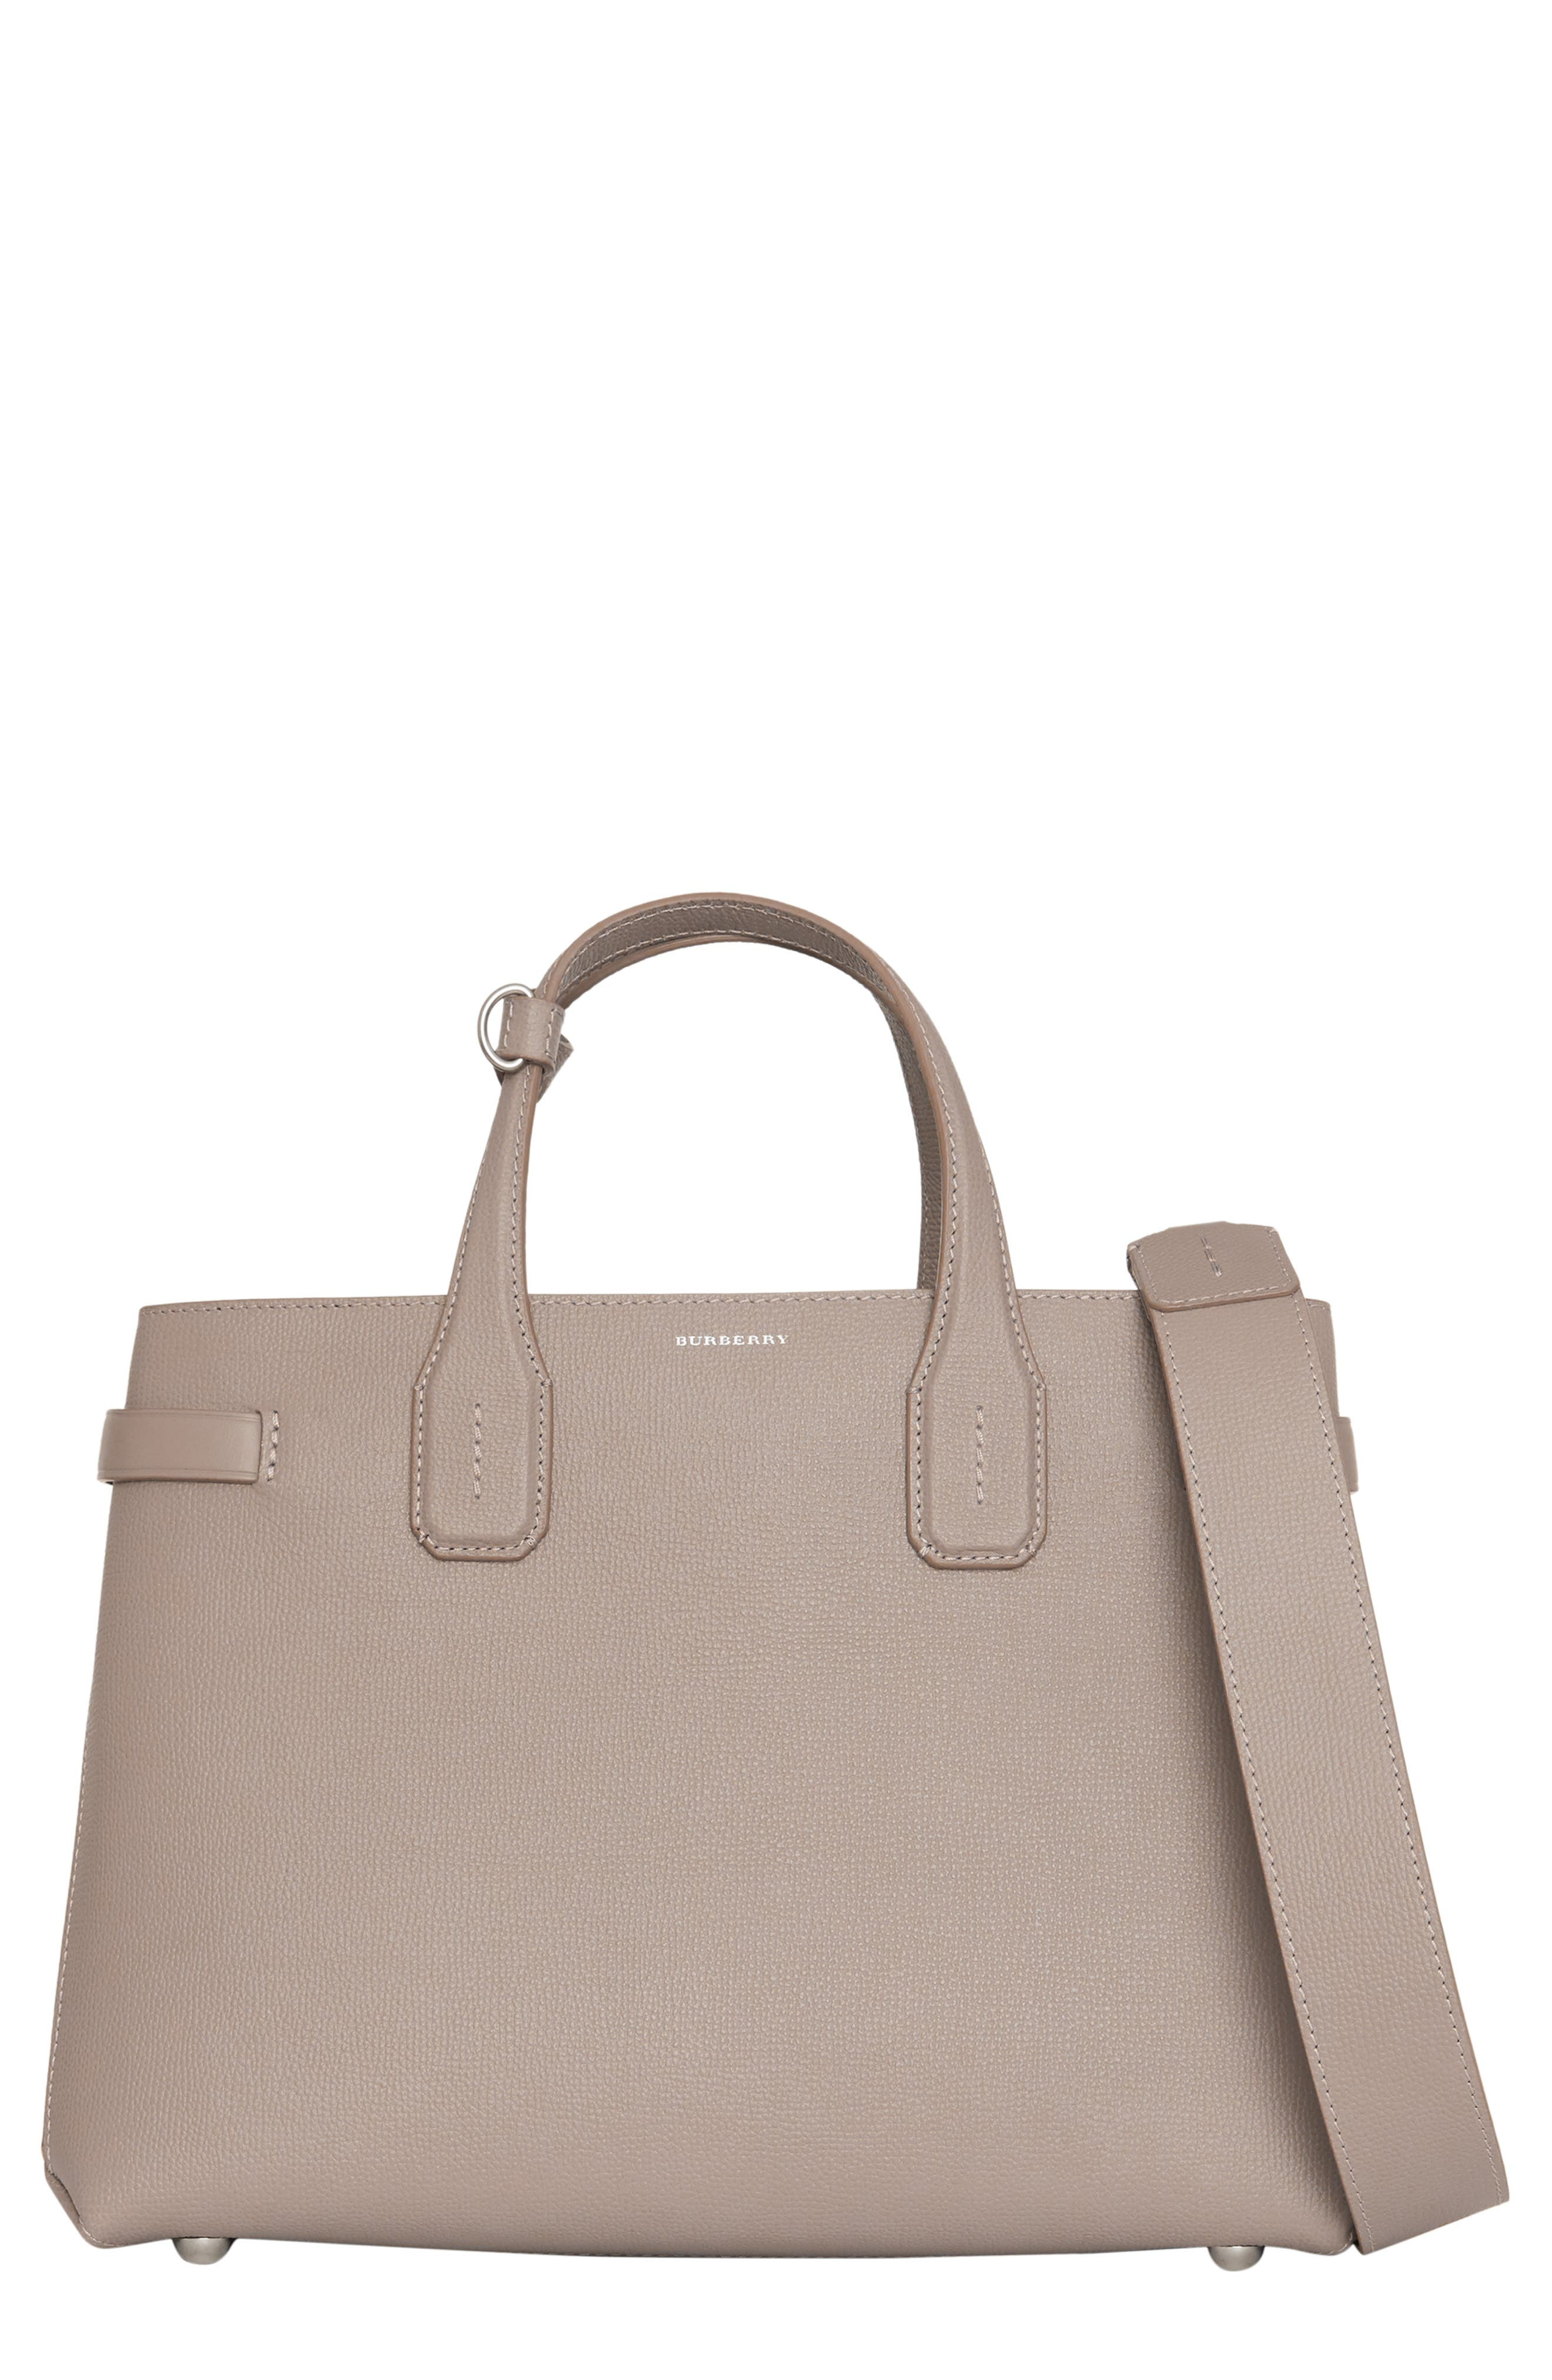 Medium Banner Leather Tote,                         Main,                         color, TAUPE BROWN